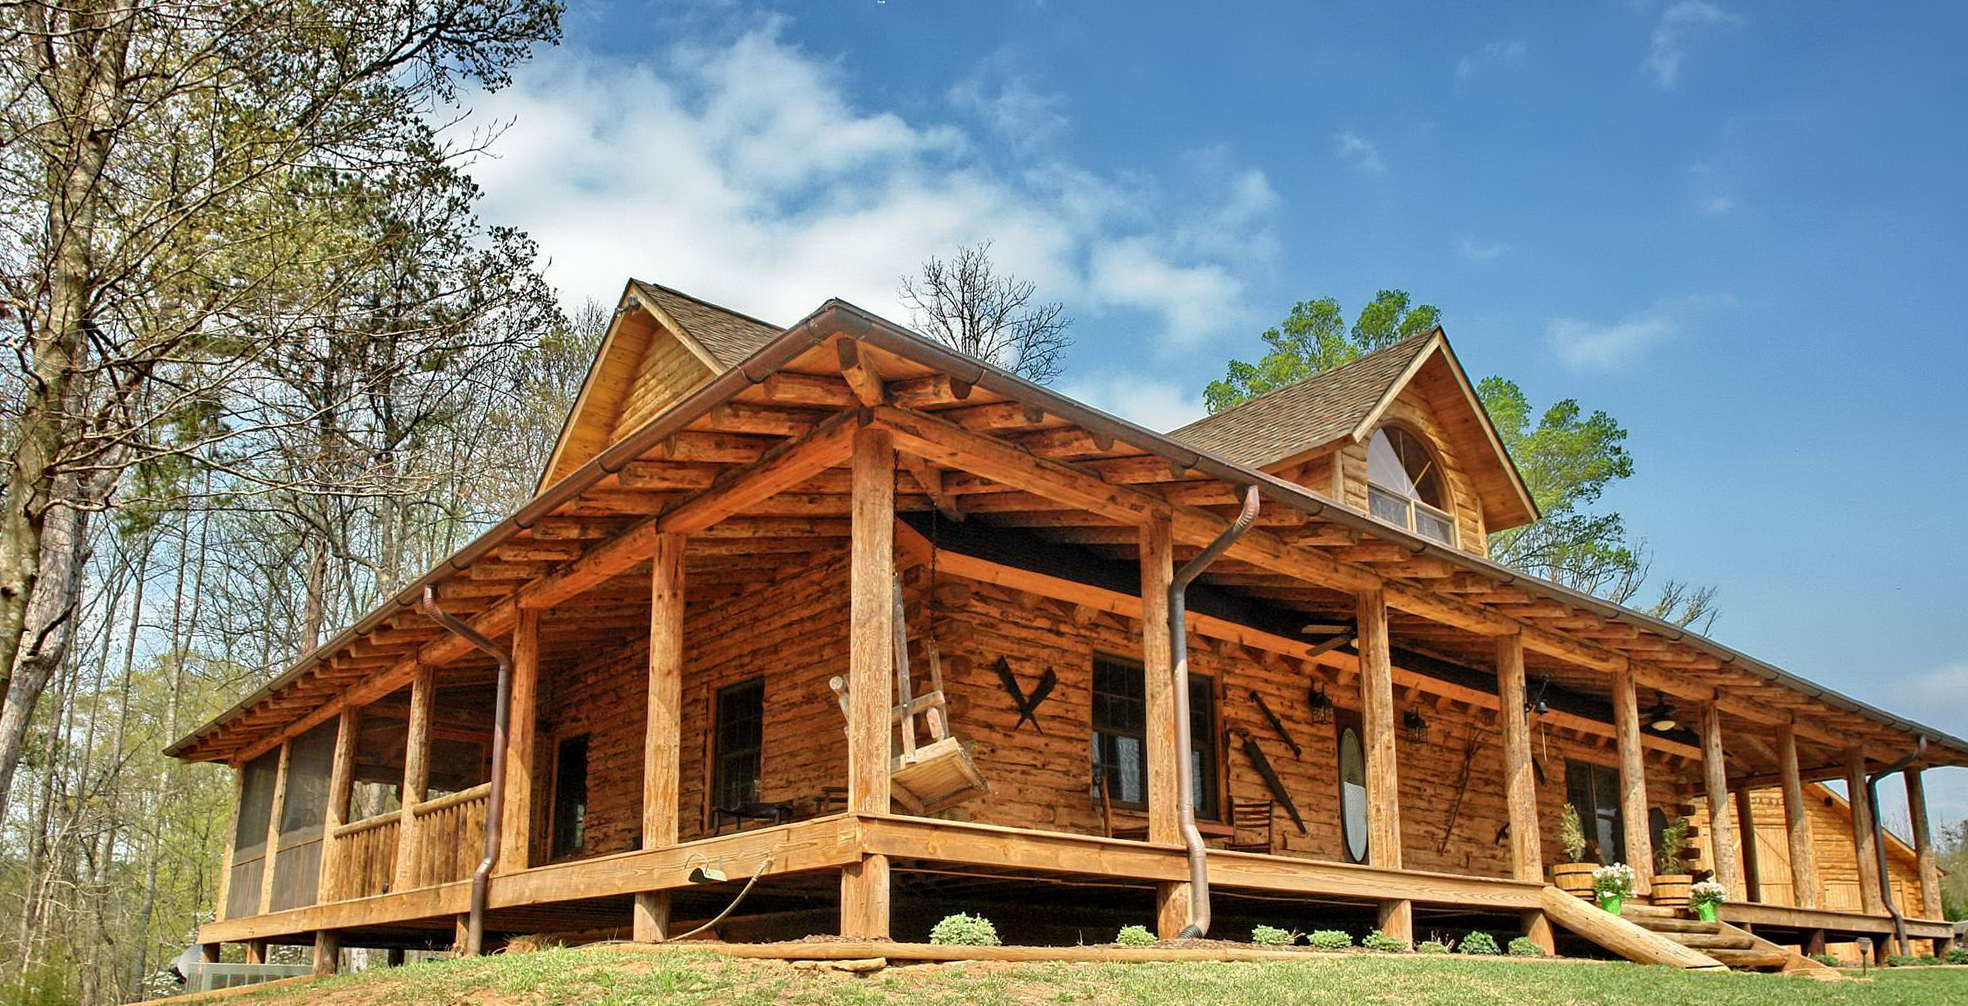 log cabin home designs and floor plans. Log Cabin Floor Plans With Wrap Around Porch  Home Design Ideas